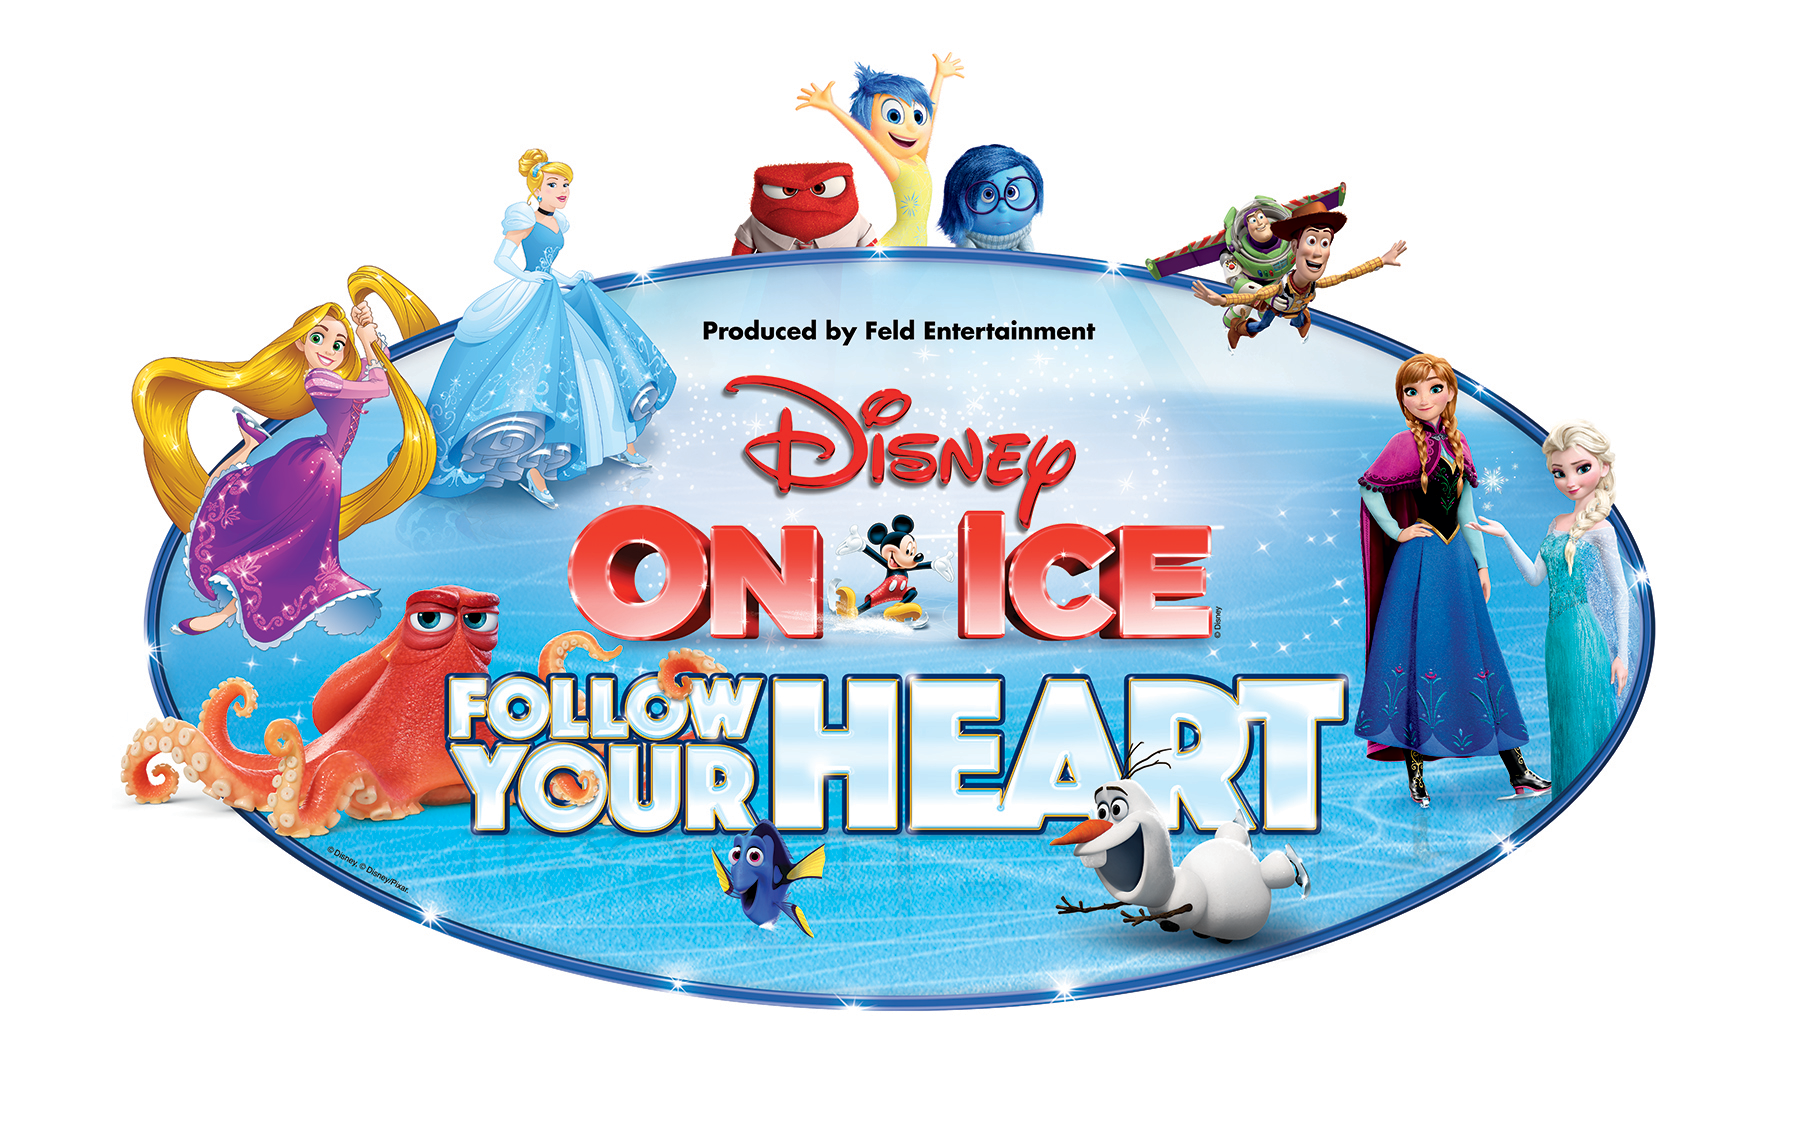 Enter to WIN TICKETS to Disney On Ice Follow Your Heart #giveaways